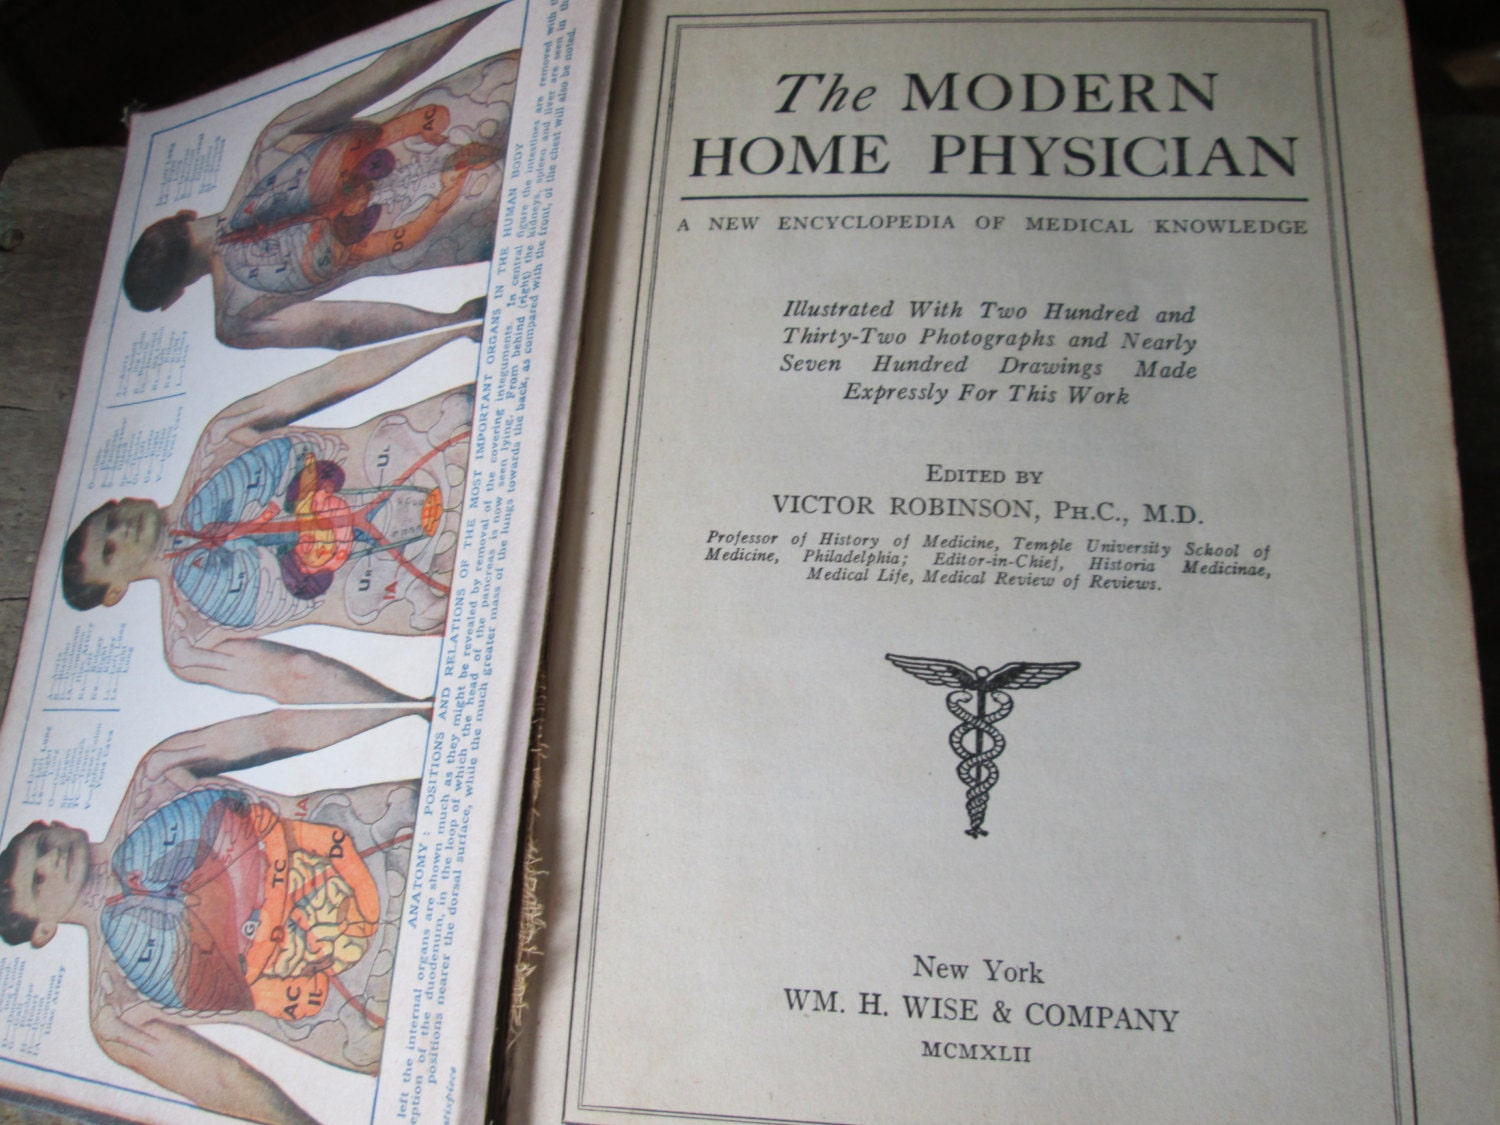 1942 Vintage Book The Modern Home Physician By